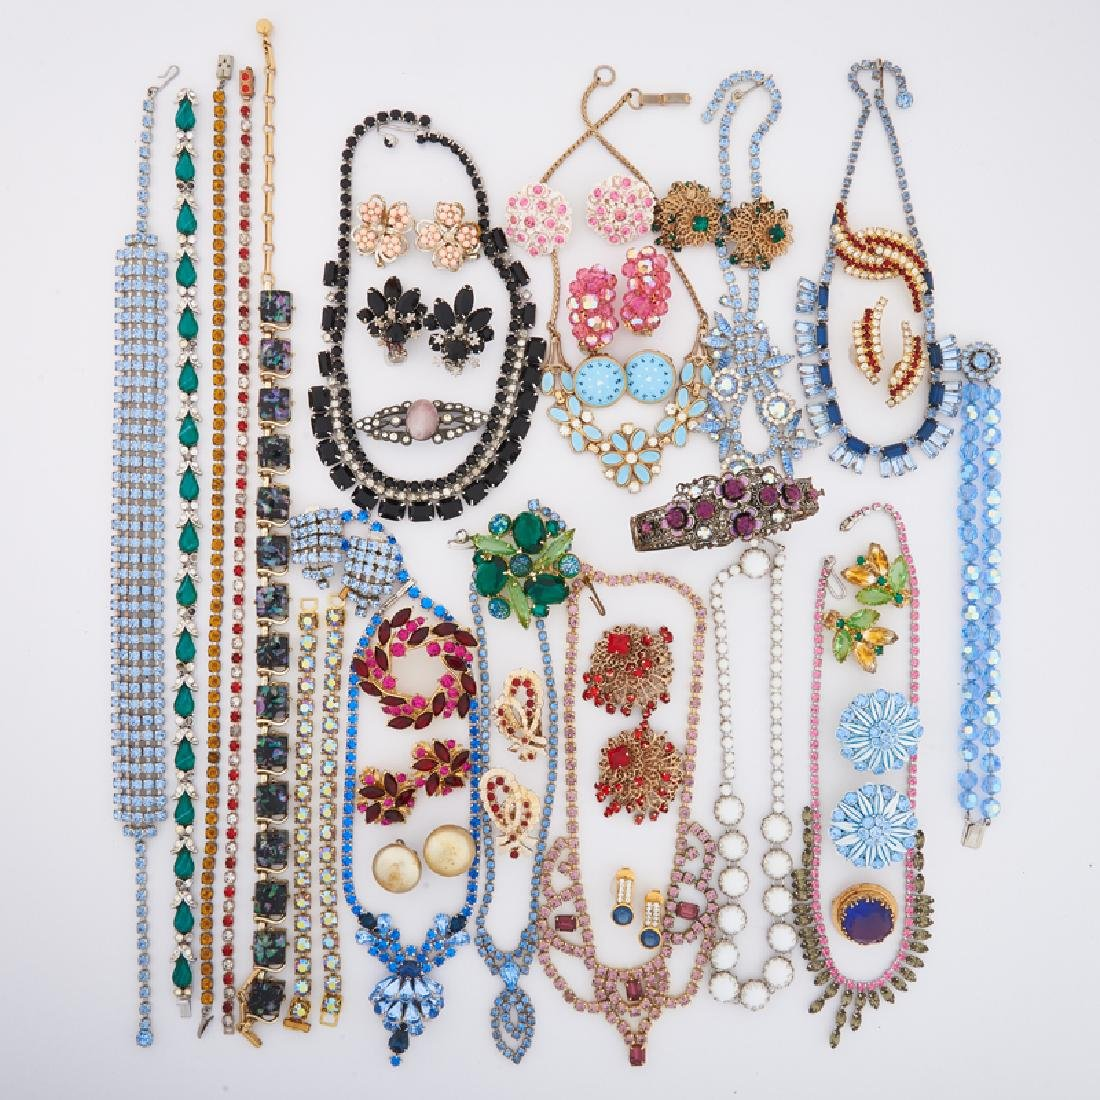 COLLECTION OF COLORFUL COSTUME JEWELRY